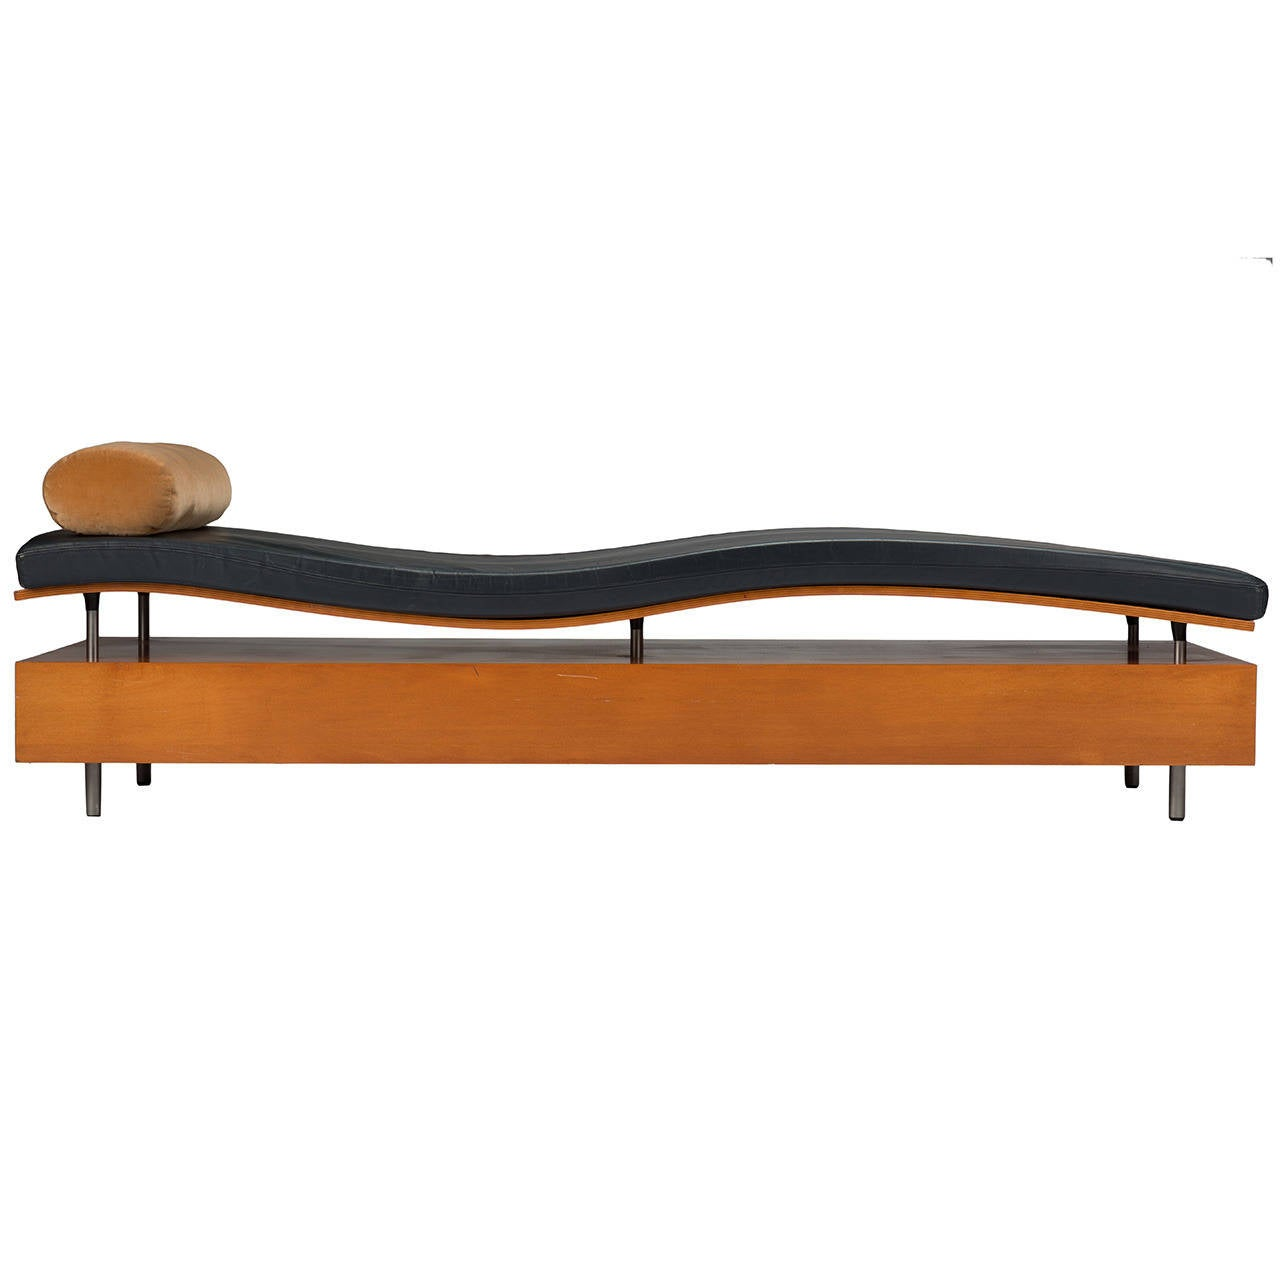 maya lin longitude chaise for knoll 1998 for sale at 1stdibs. Black Bedroom Furniture Sets. Home Design Ideas